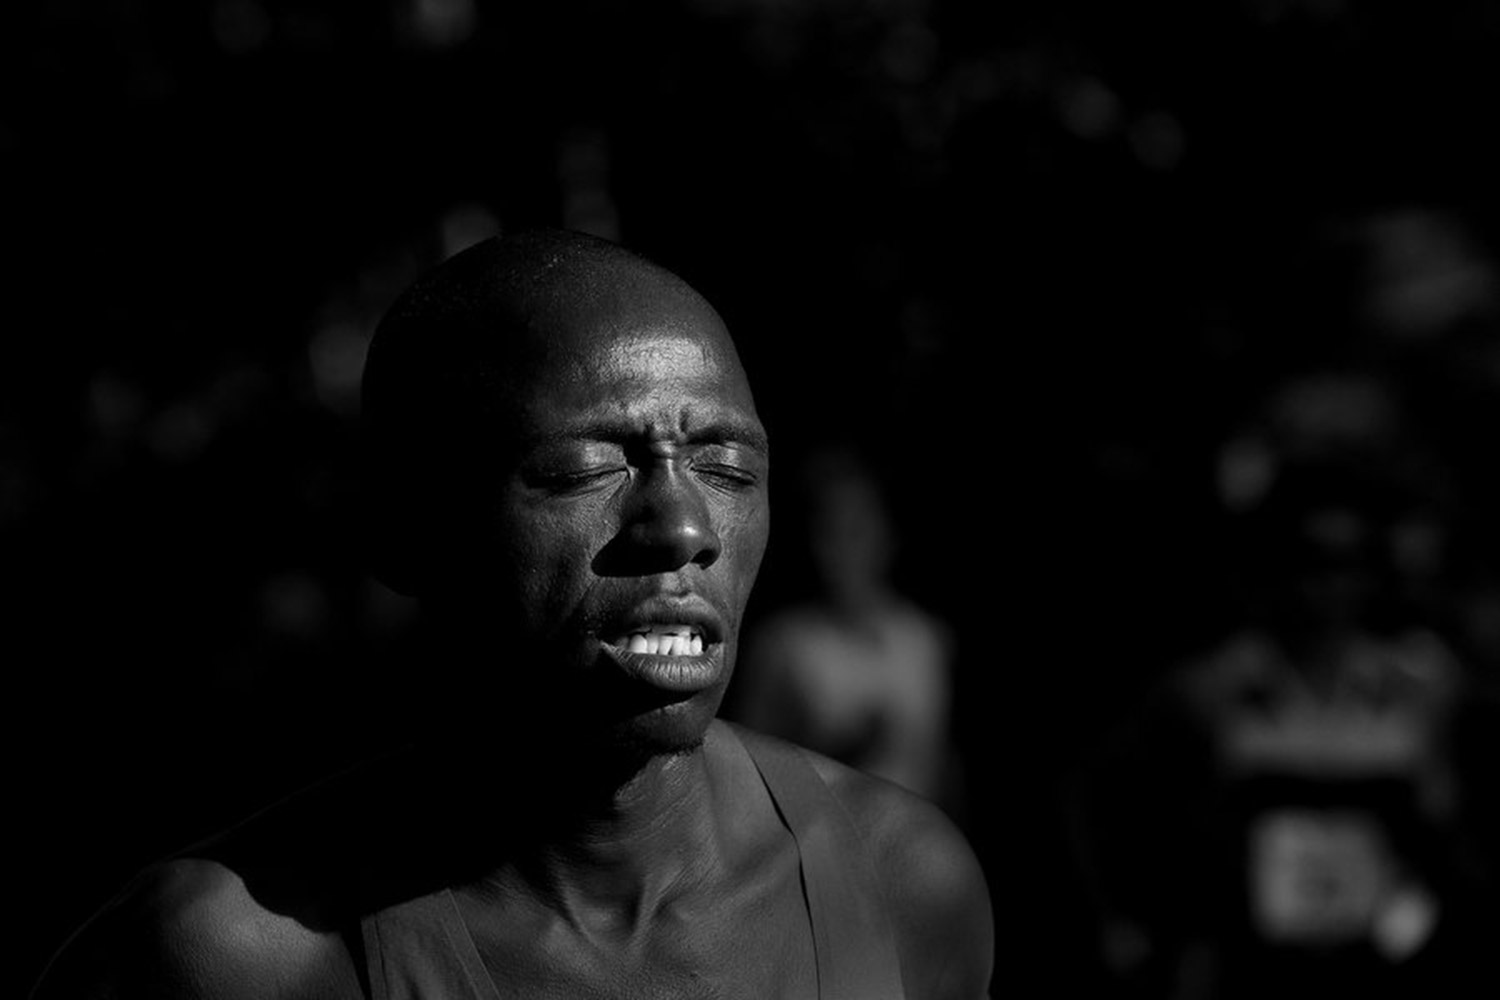 Daniel Salel of Kenya makes his way along the course in hot conditions during the TD Beach to Beacon 10K. The story of the race can be told through the faces of the runners.